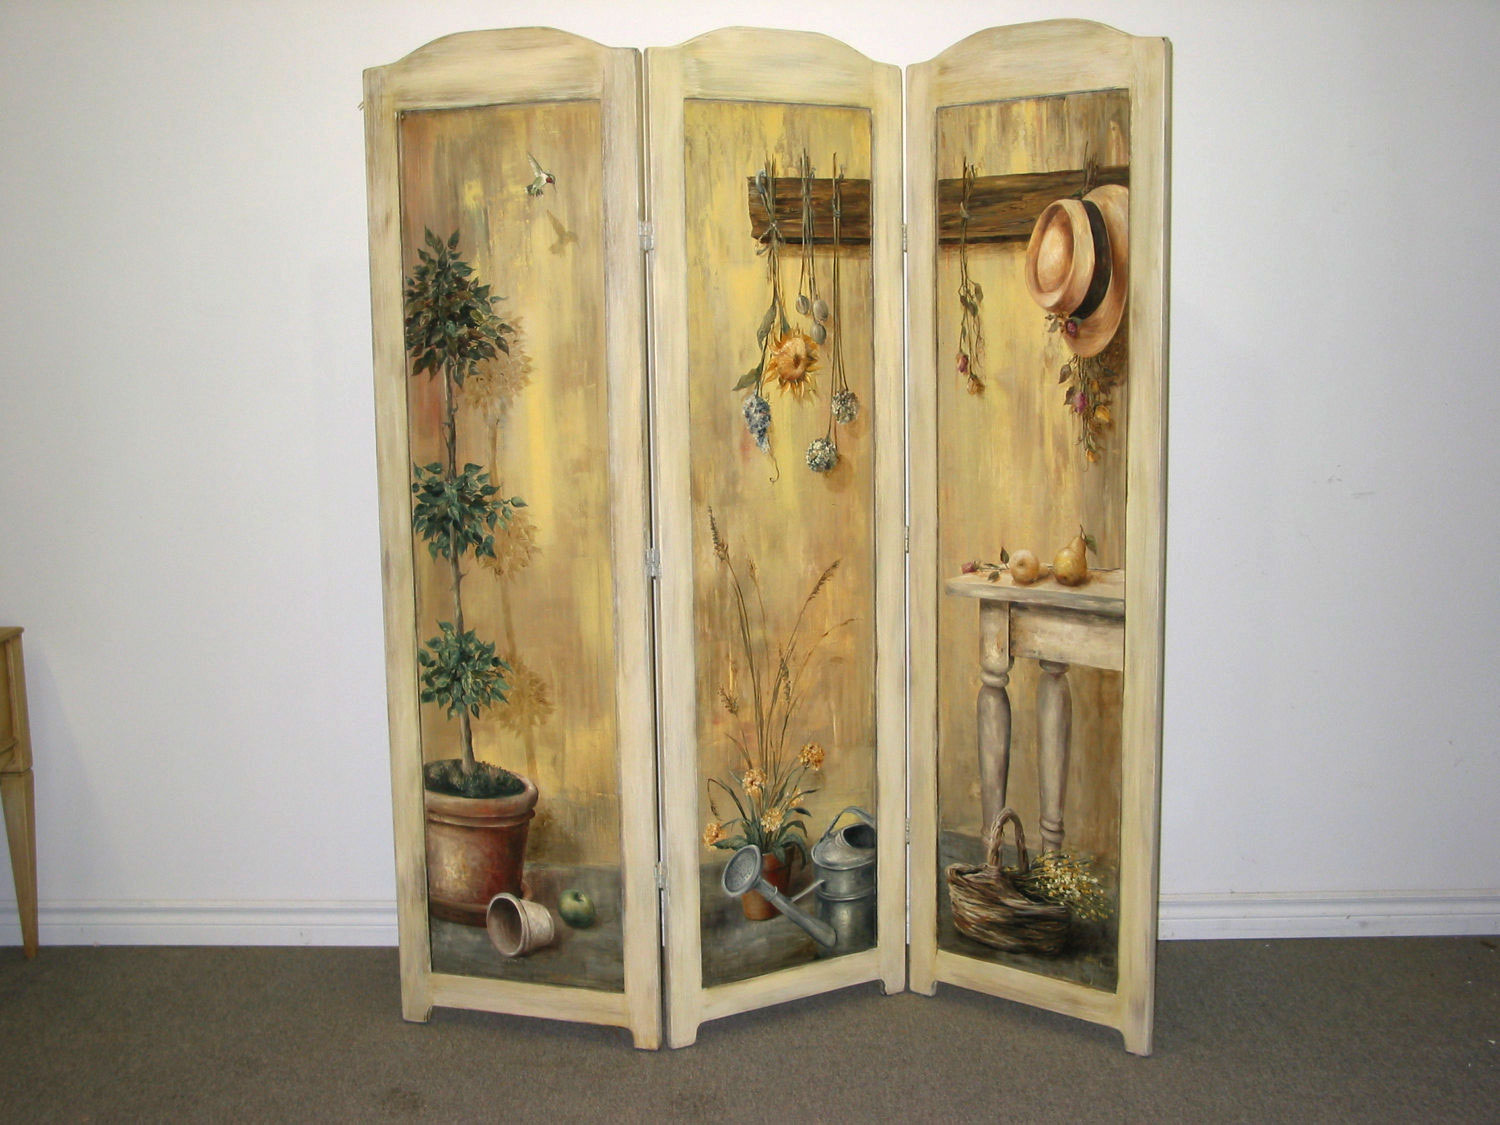 Hand Painted Room Dividers o2 Pilates